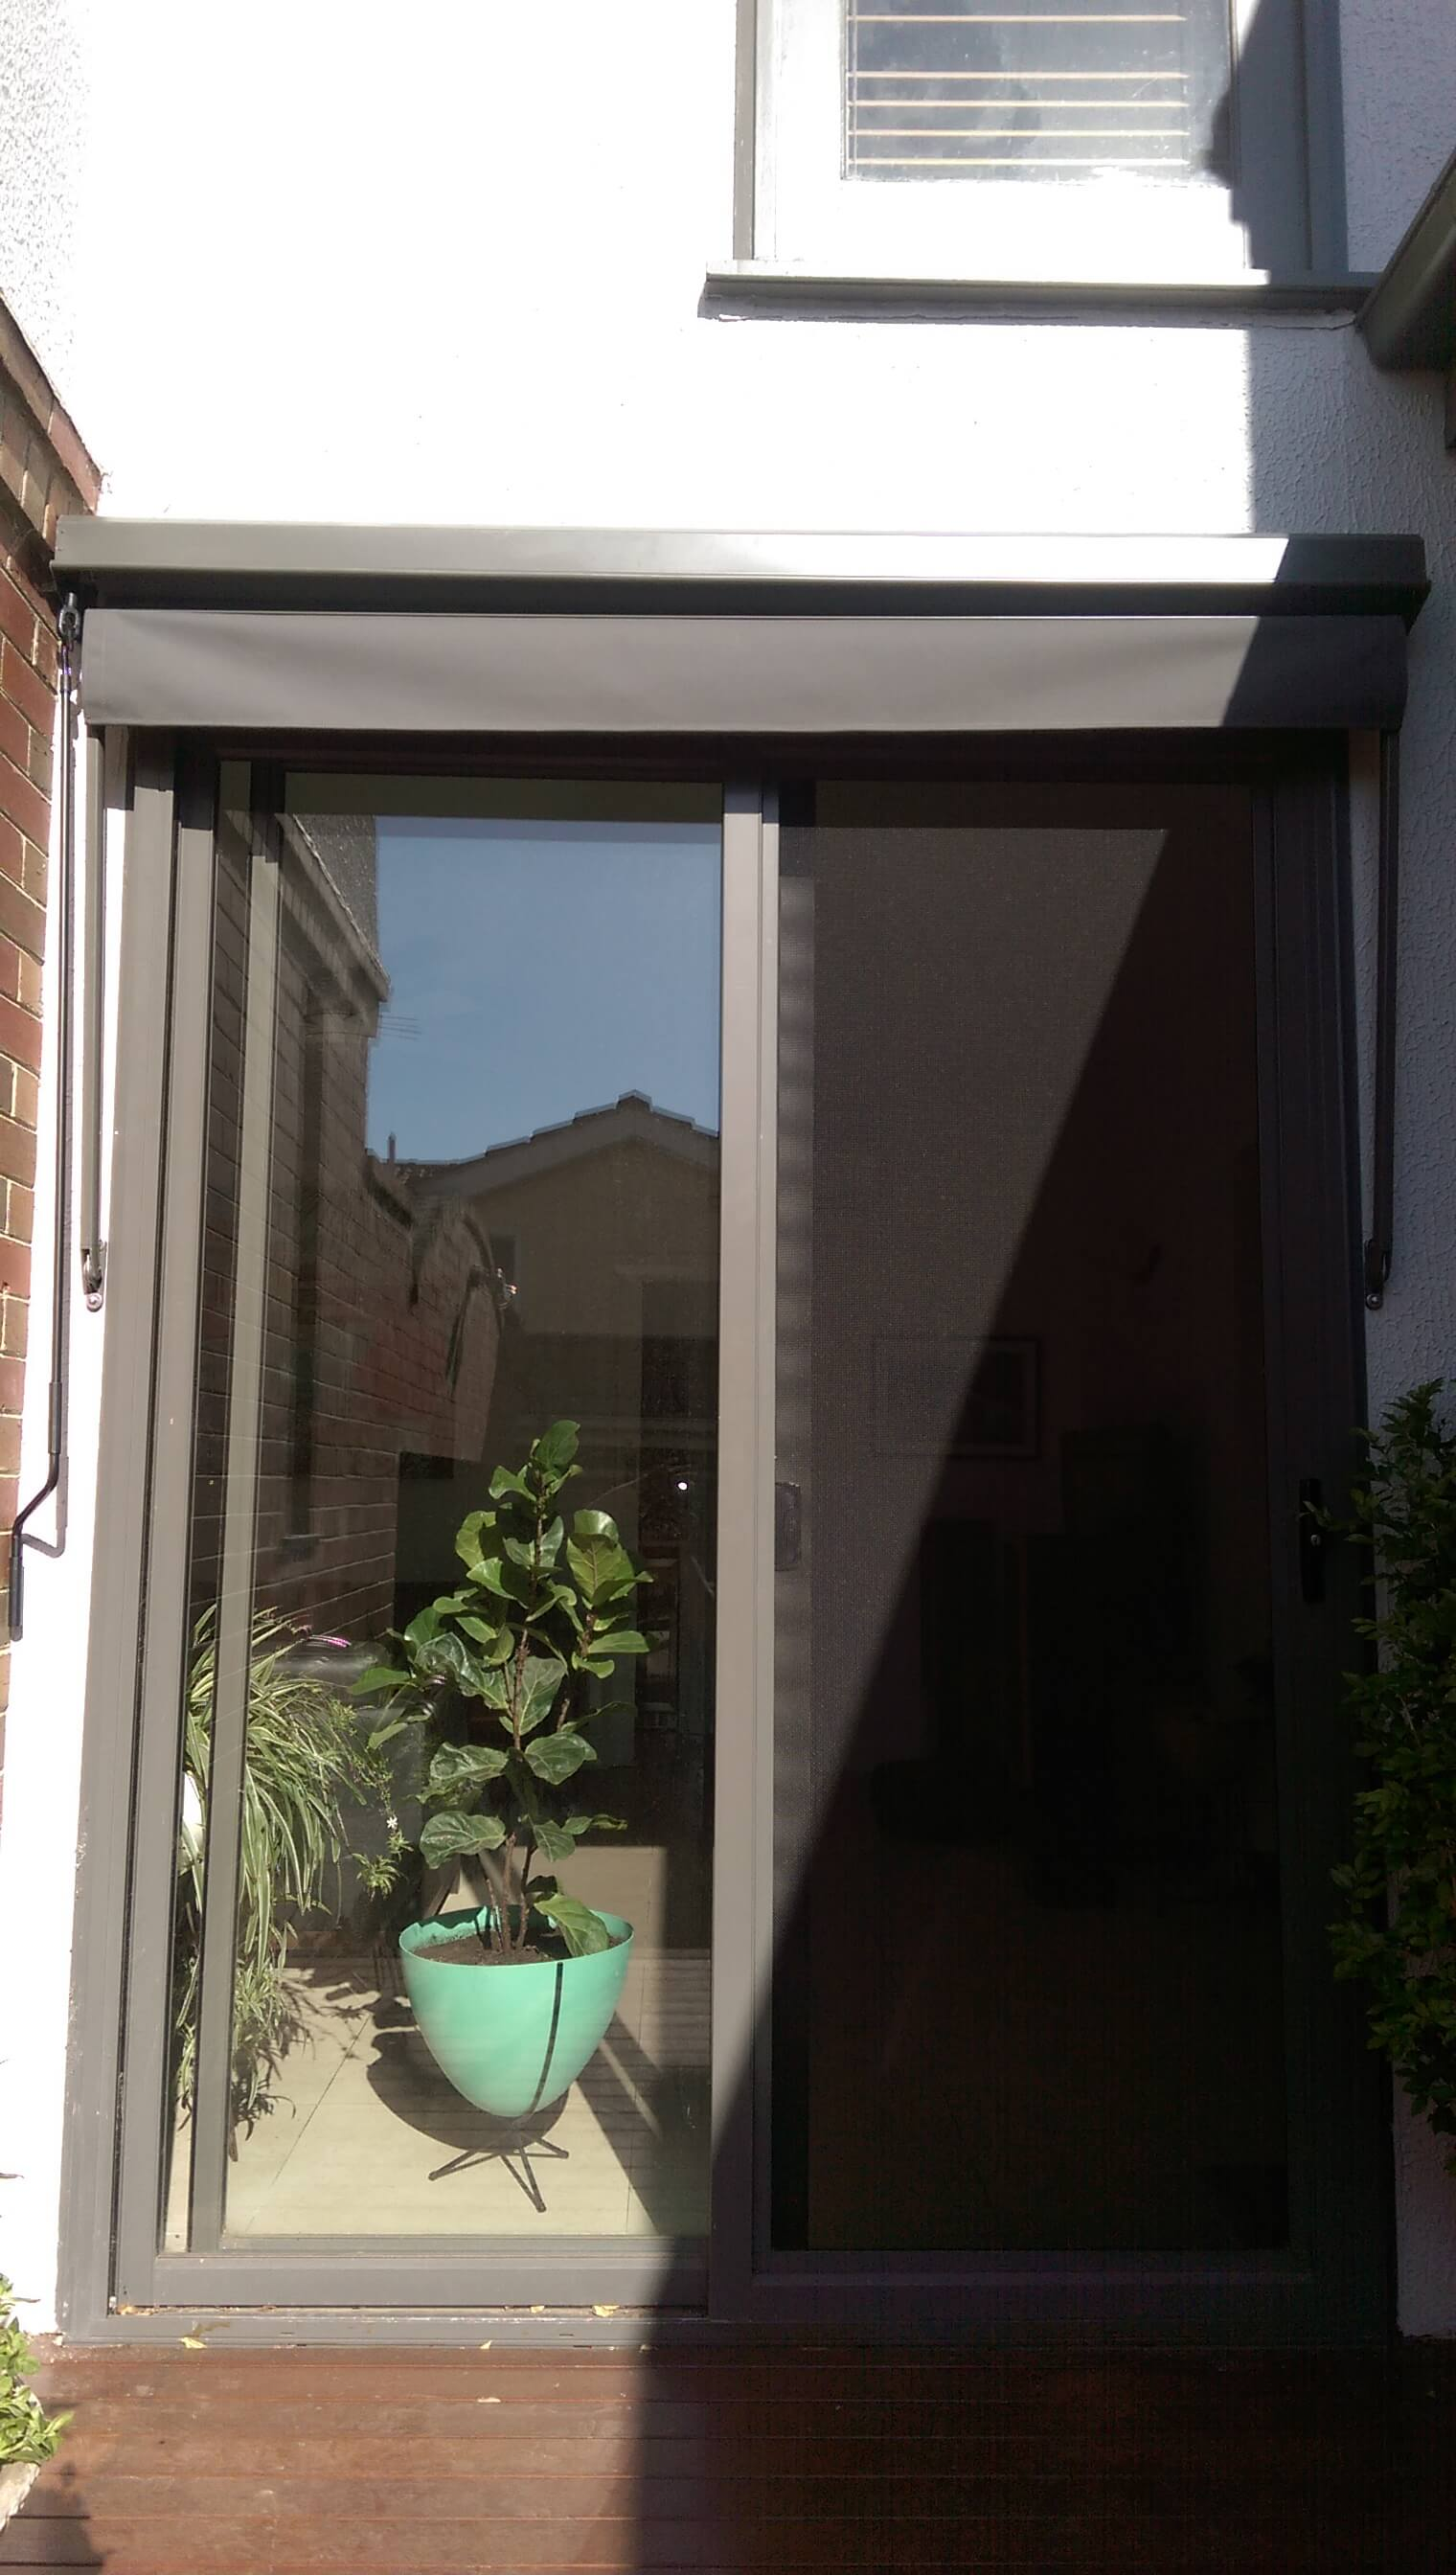 DROP ARM AWNING OVER DOOR OPEN